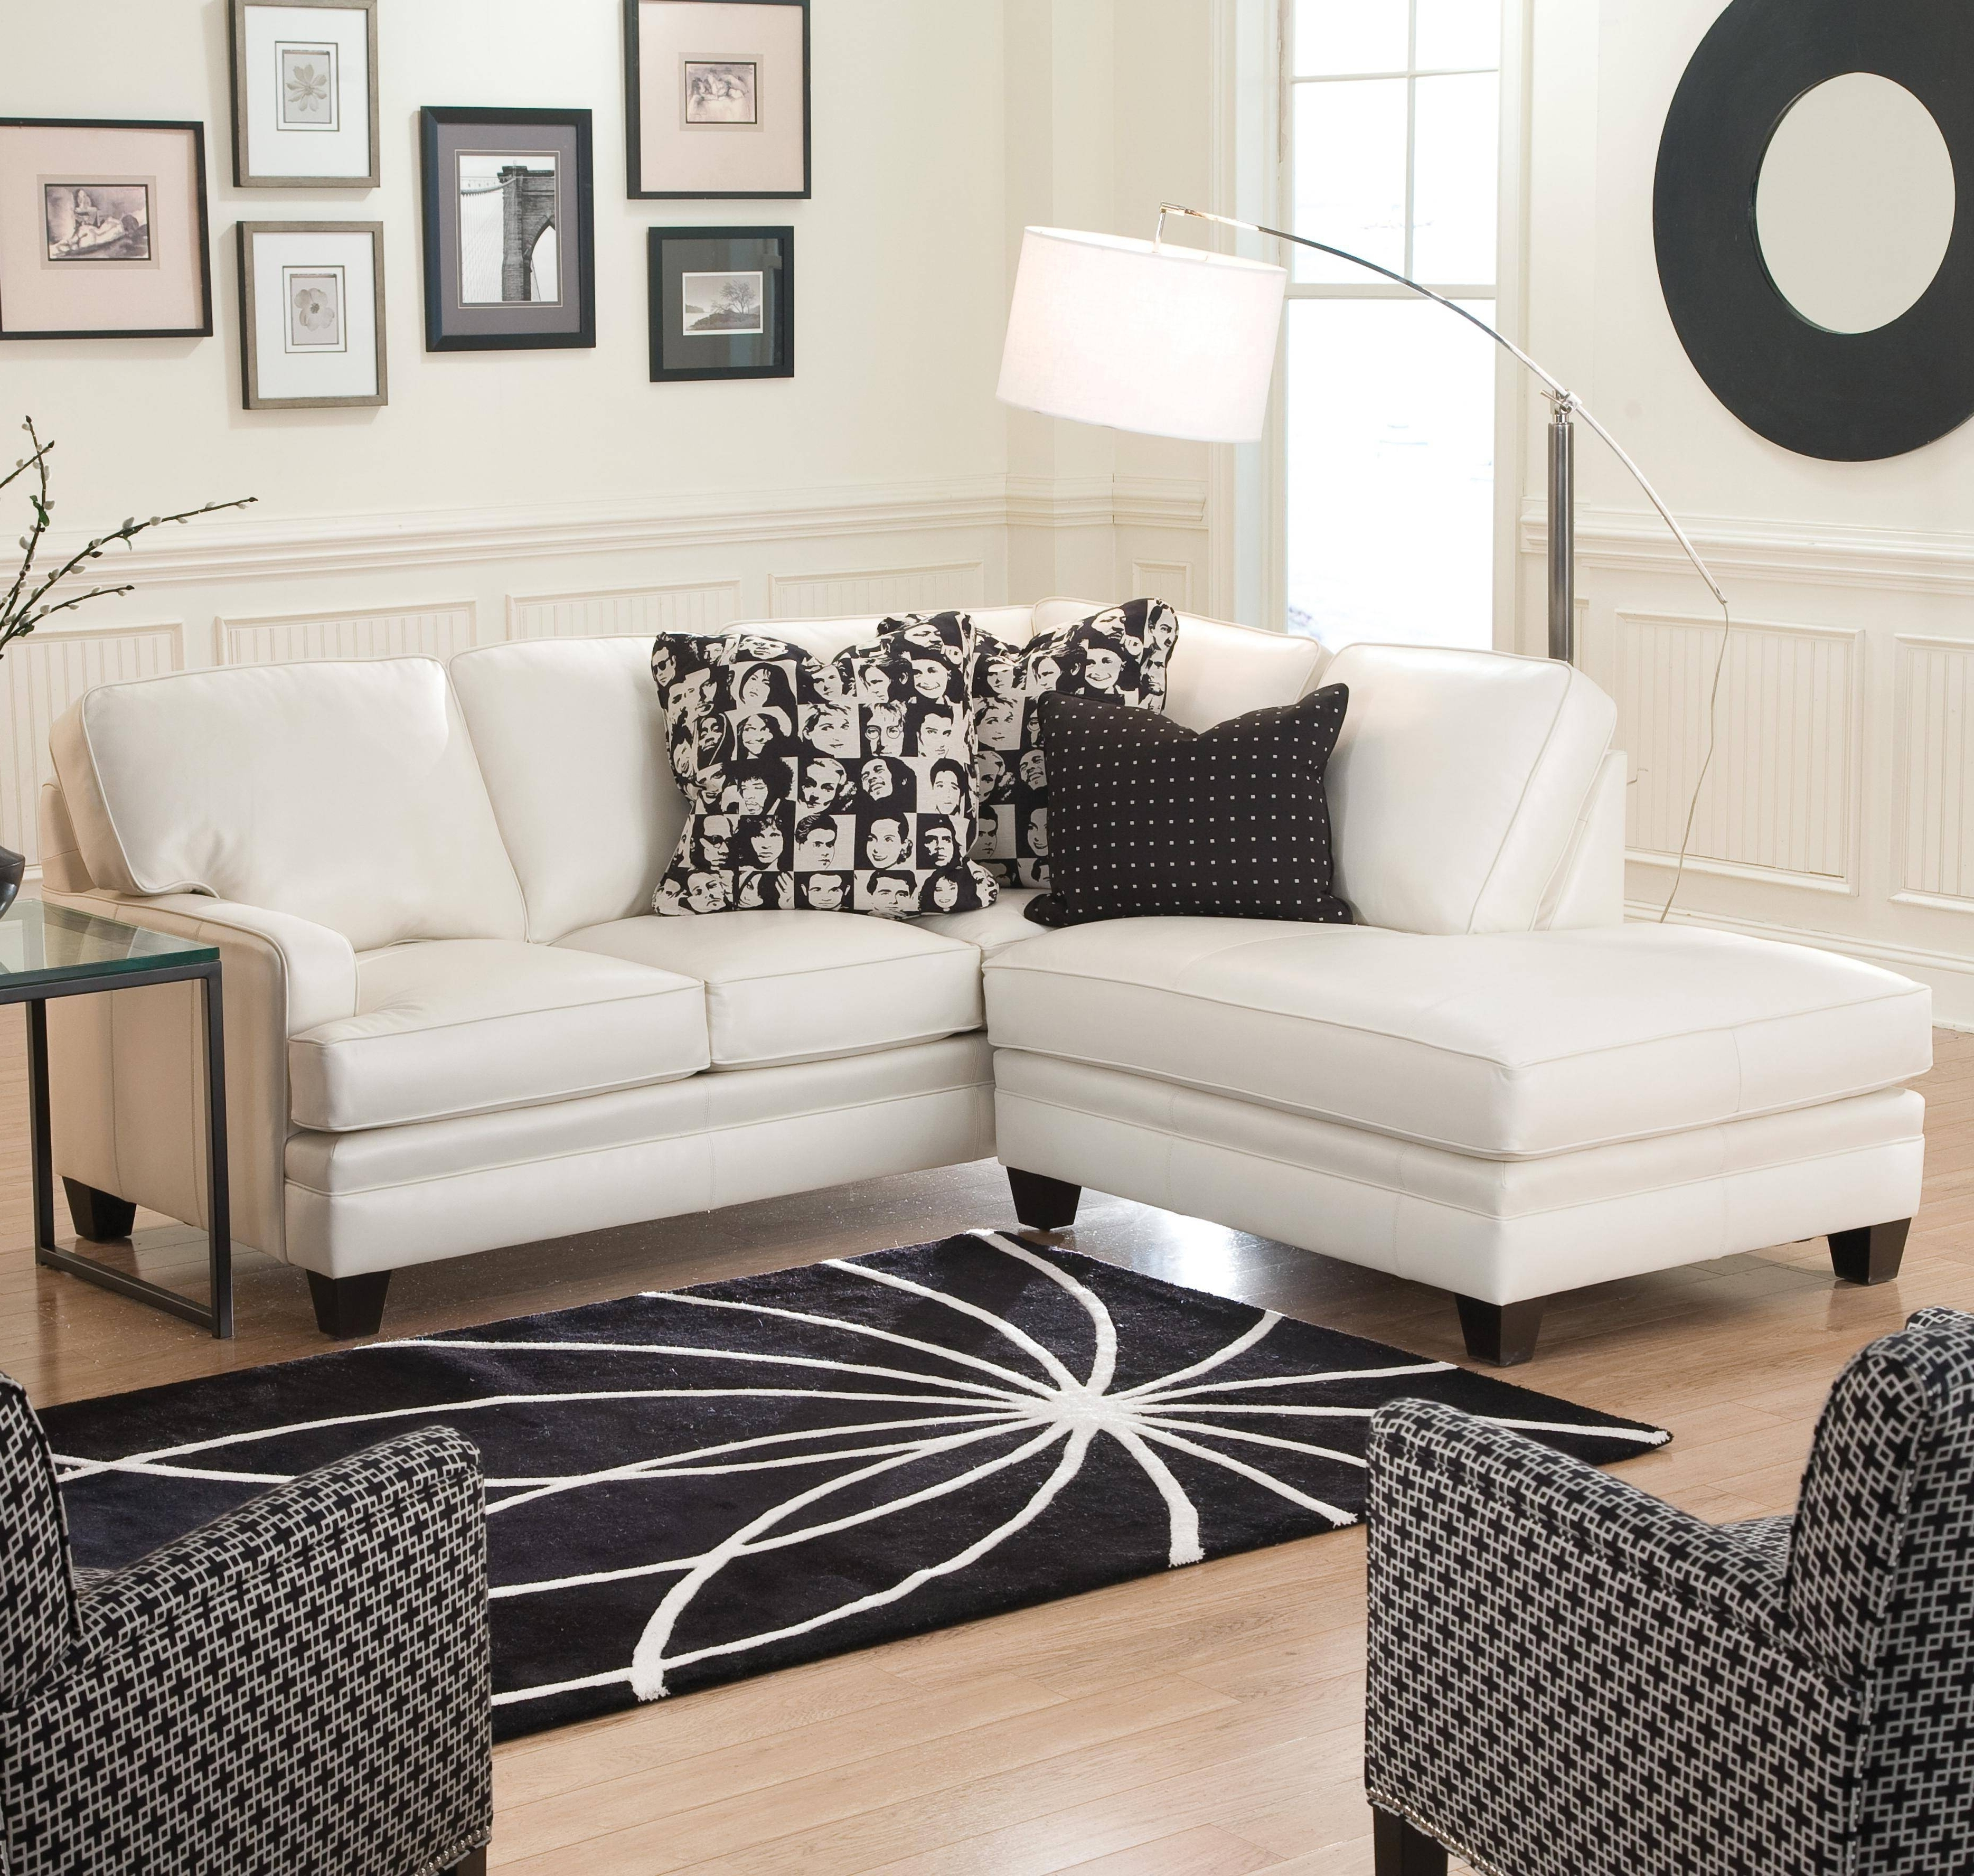 Popular Apartment Sectional Sofas With Chaise Intended For Stunning Apartment Sofa With Chaise Gallery – Liltigertoo (View 17 of 20)